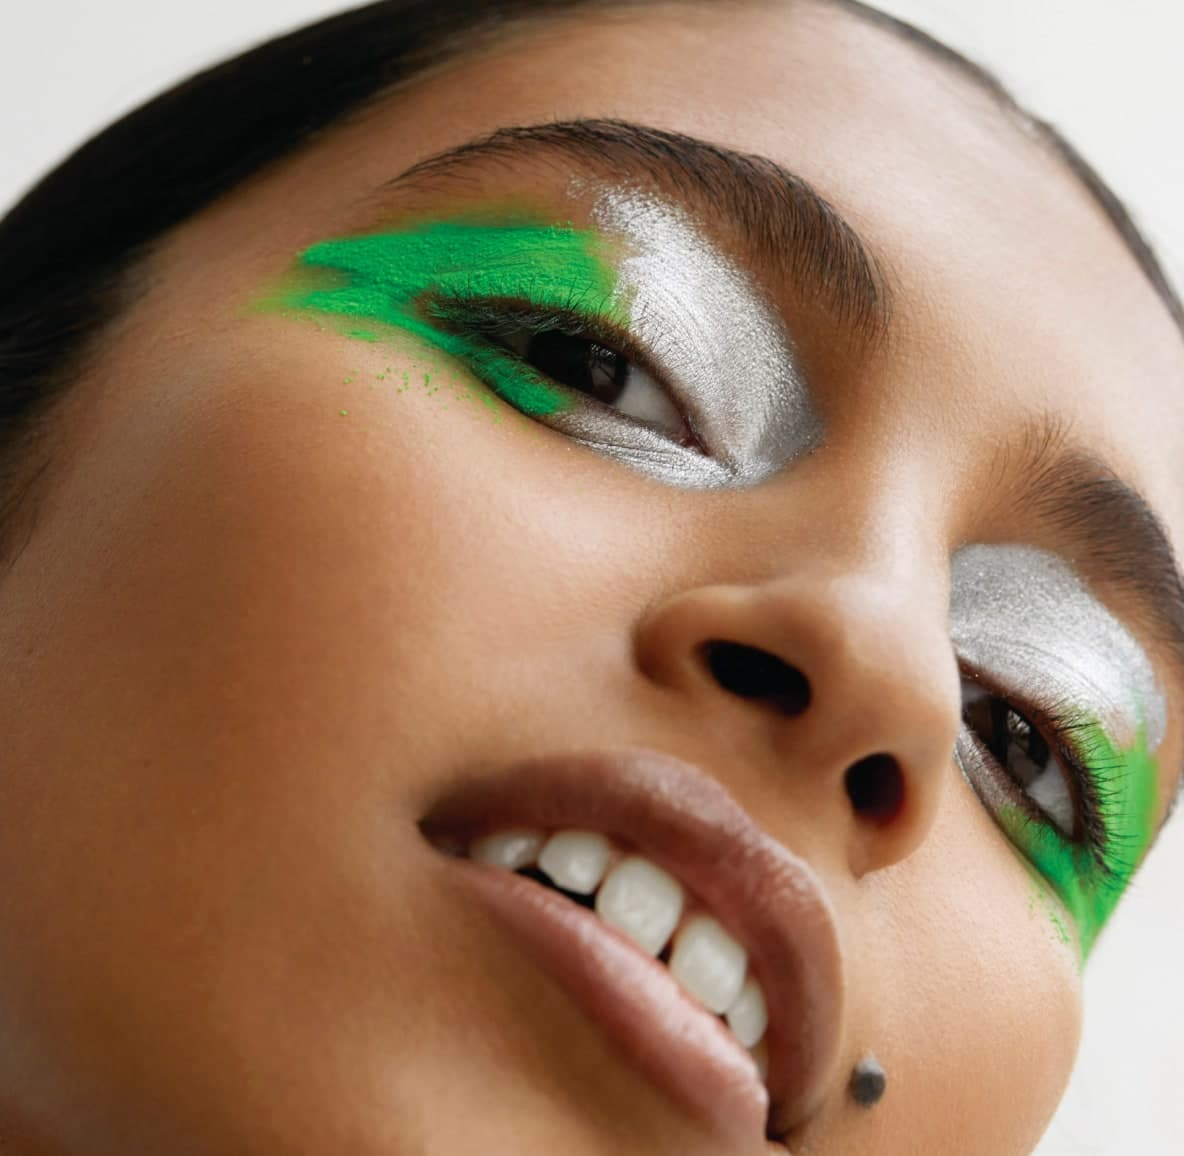 Young woman looking into the camera with dramatic electric green and silver eyeshadow